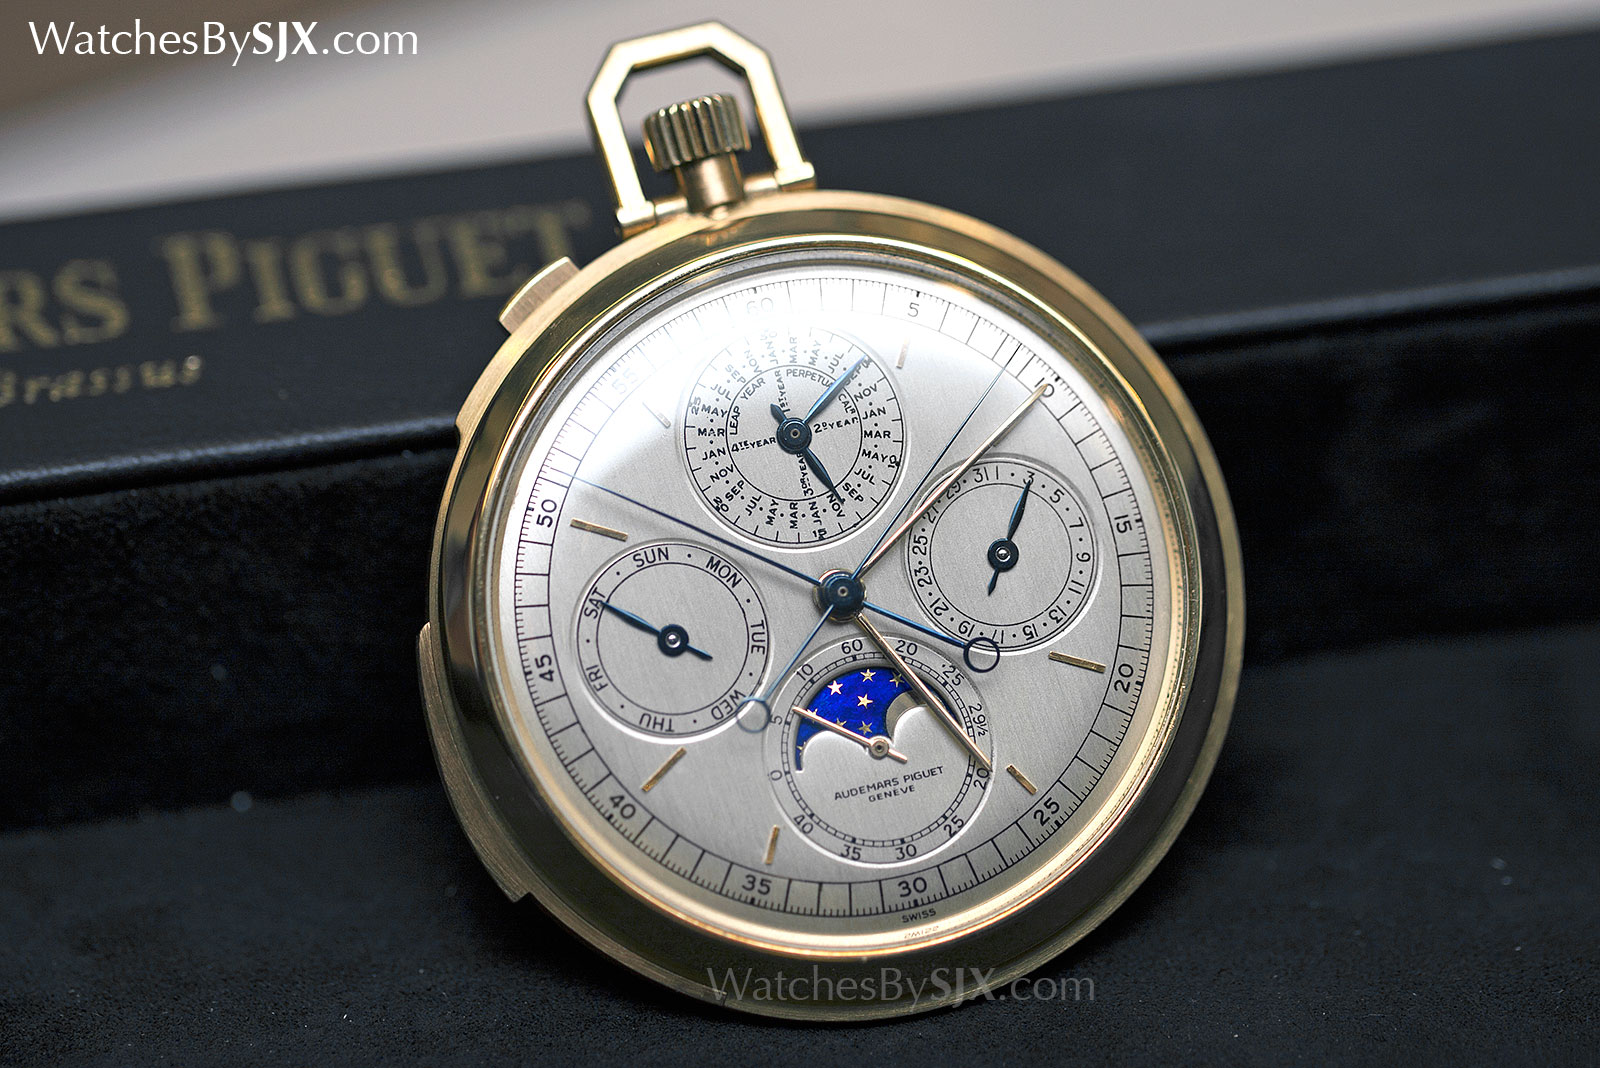 Audemars Piguet grand complication pocket watch c. 1970 4